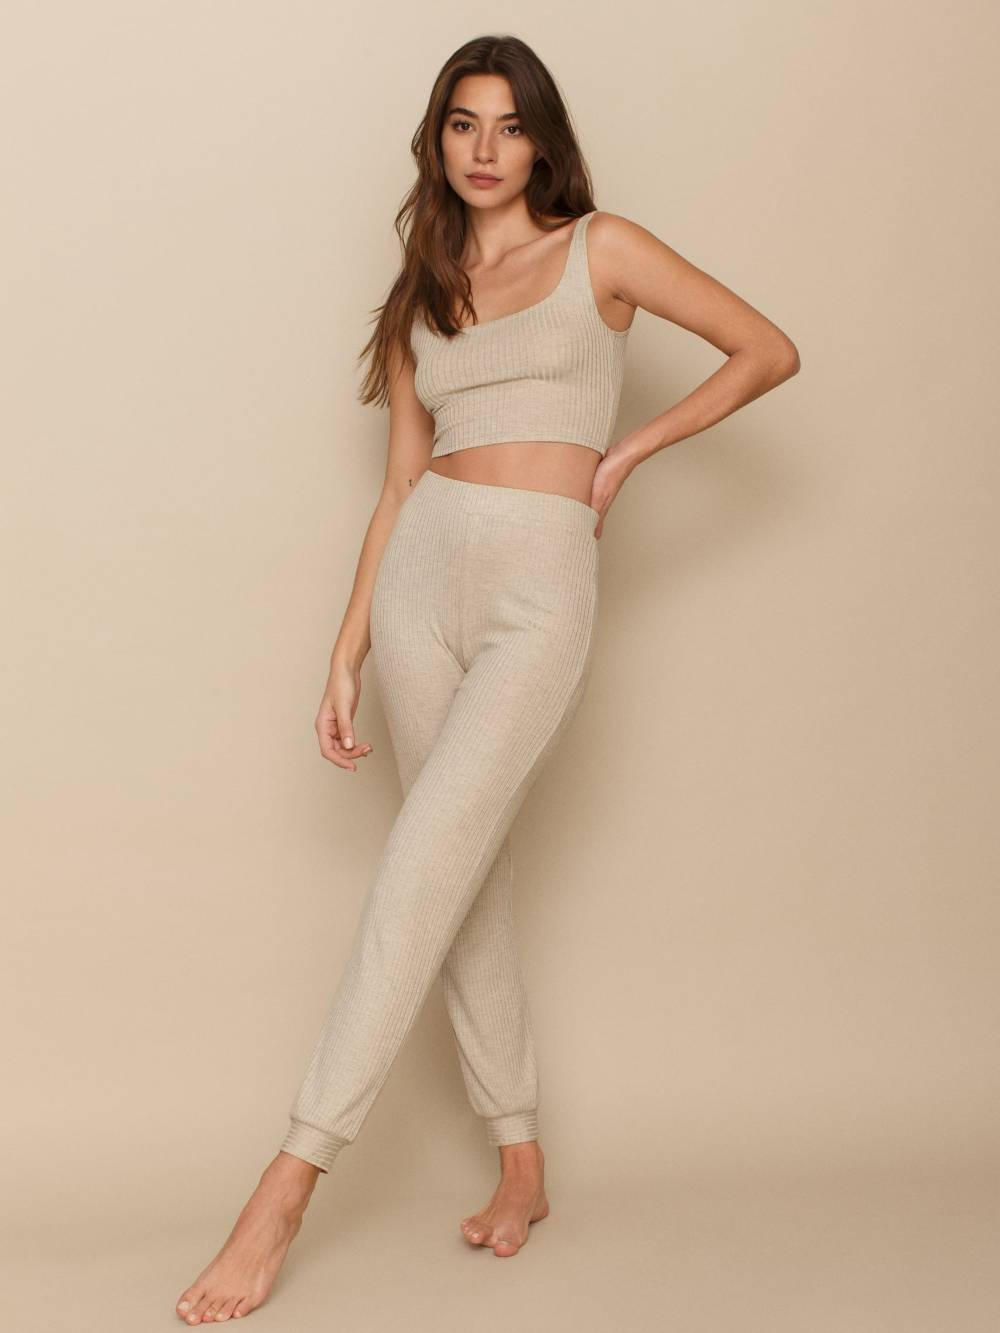 reformation sustainable affordable loungewear